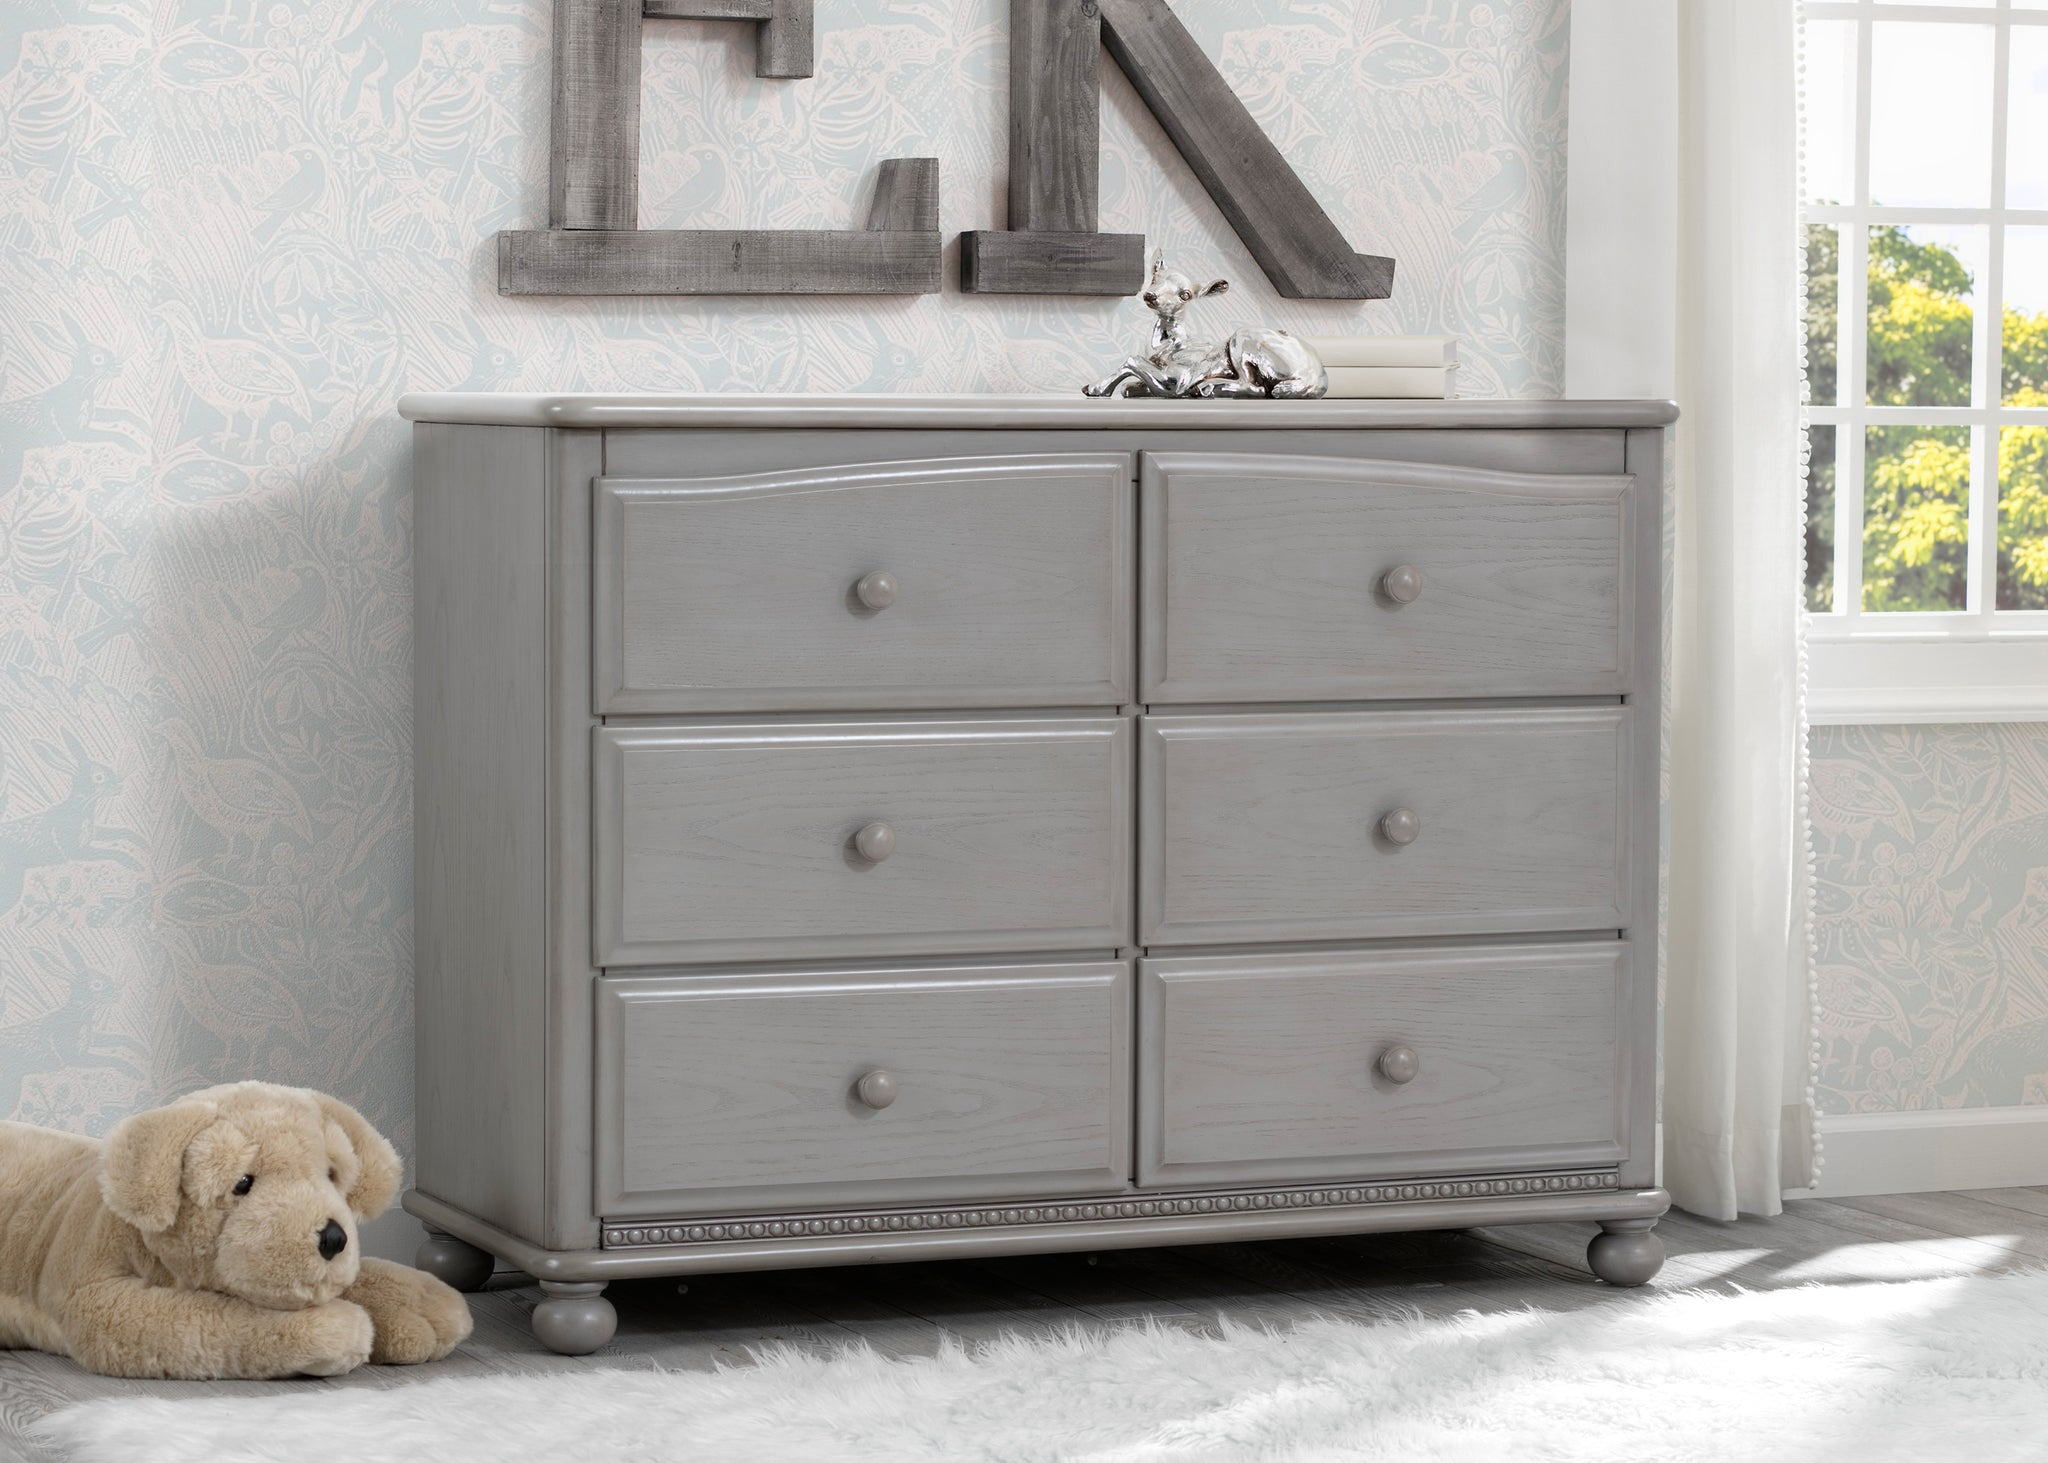 Simmons Kids Storm (161) Cortona 6 Drawer Dresser, Room Shot, b1b